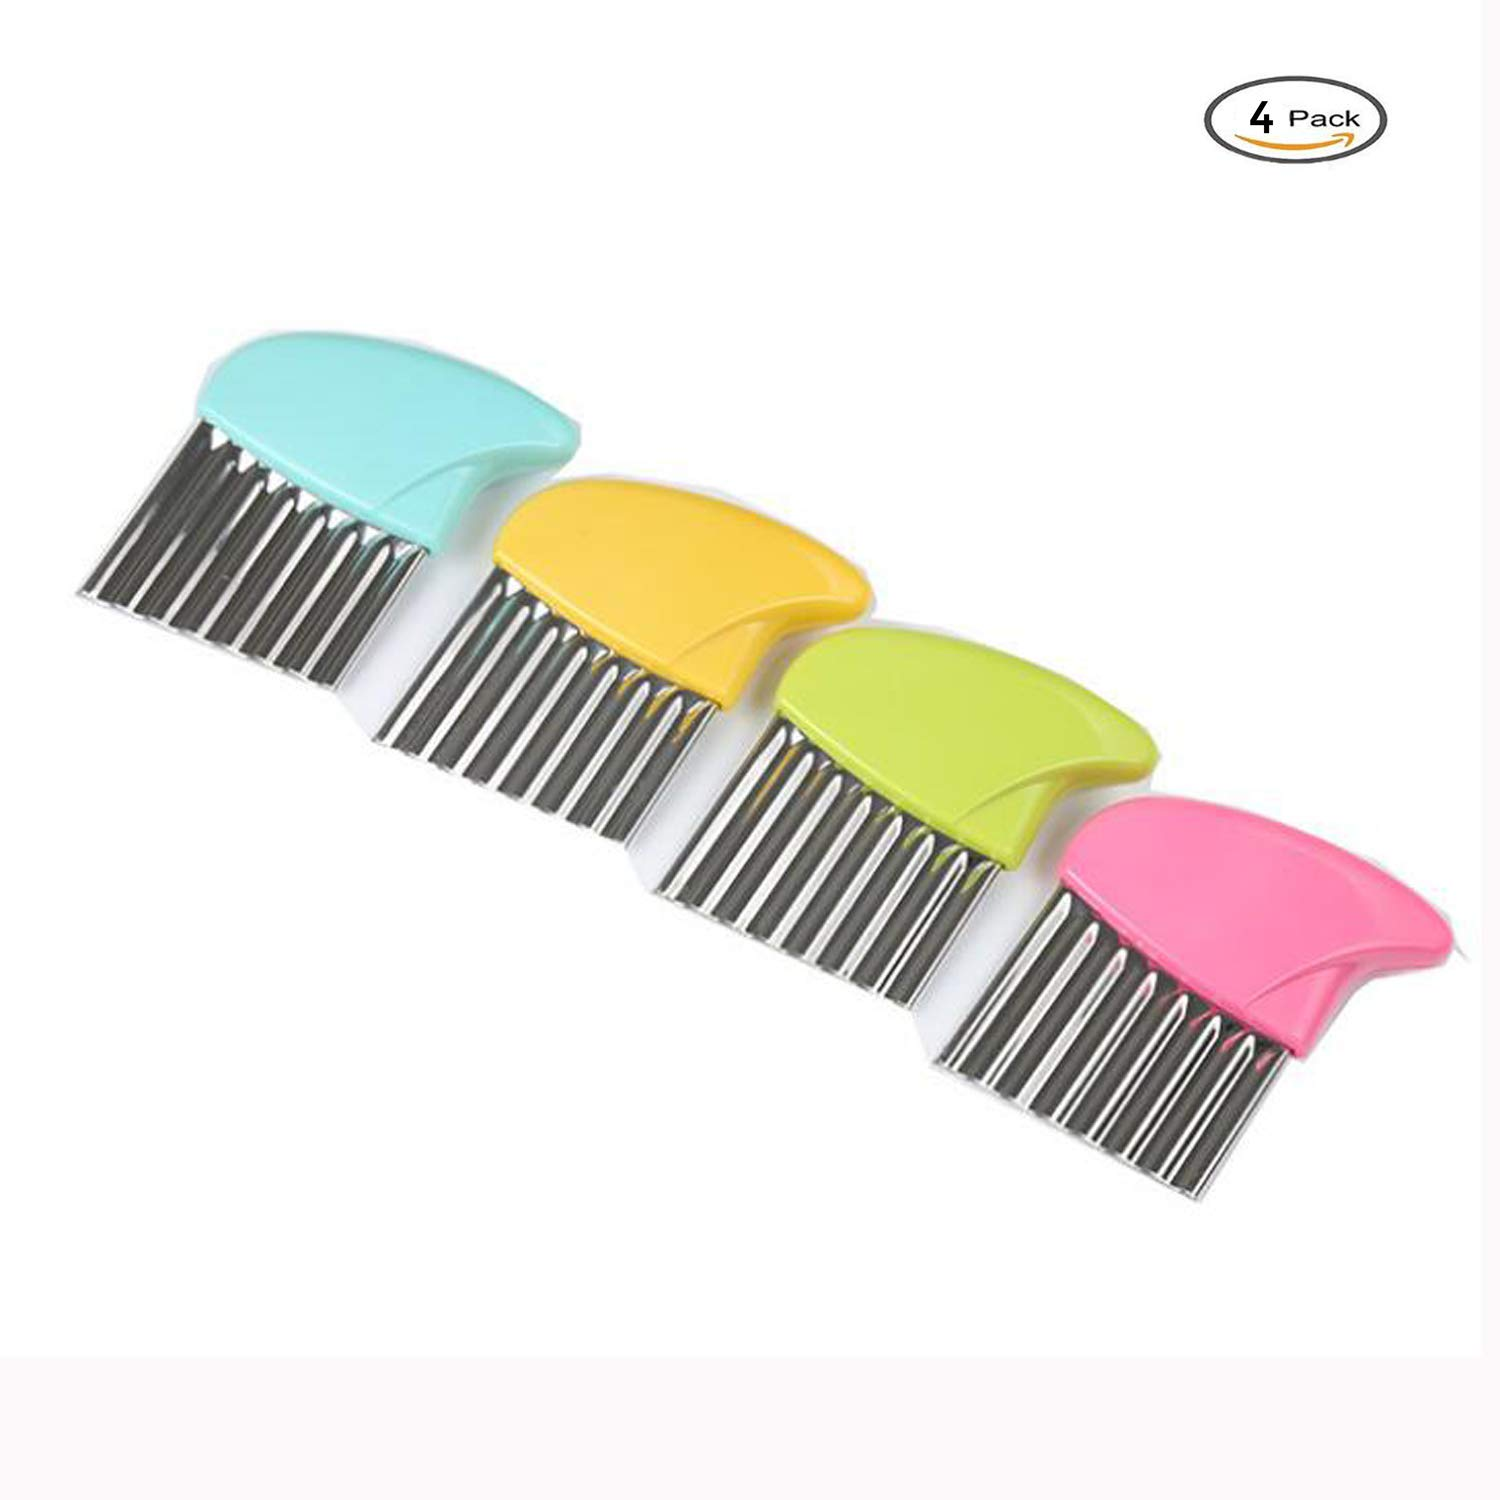 Wavy Knife Crinkle Cutter Chopping Tool Slicer With Stainless Steel Blade Potato Wavy Edged Knife Kitchen Gadget Vegetable Fruit Cutting Peeler Cooking Tool Accessories 4 Pack Multicolor by J&Q (Image #1)